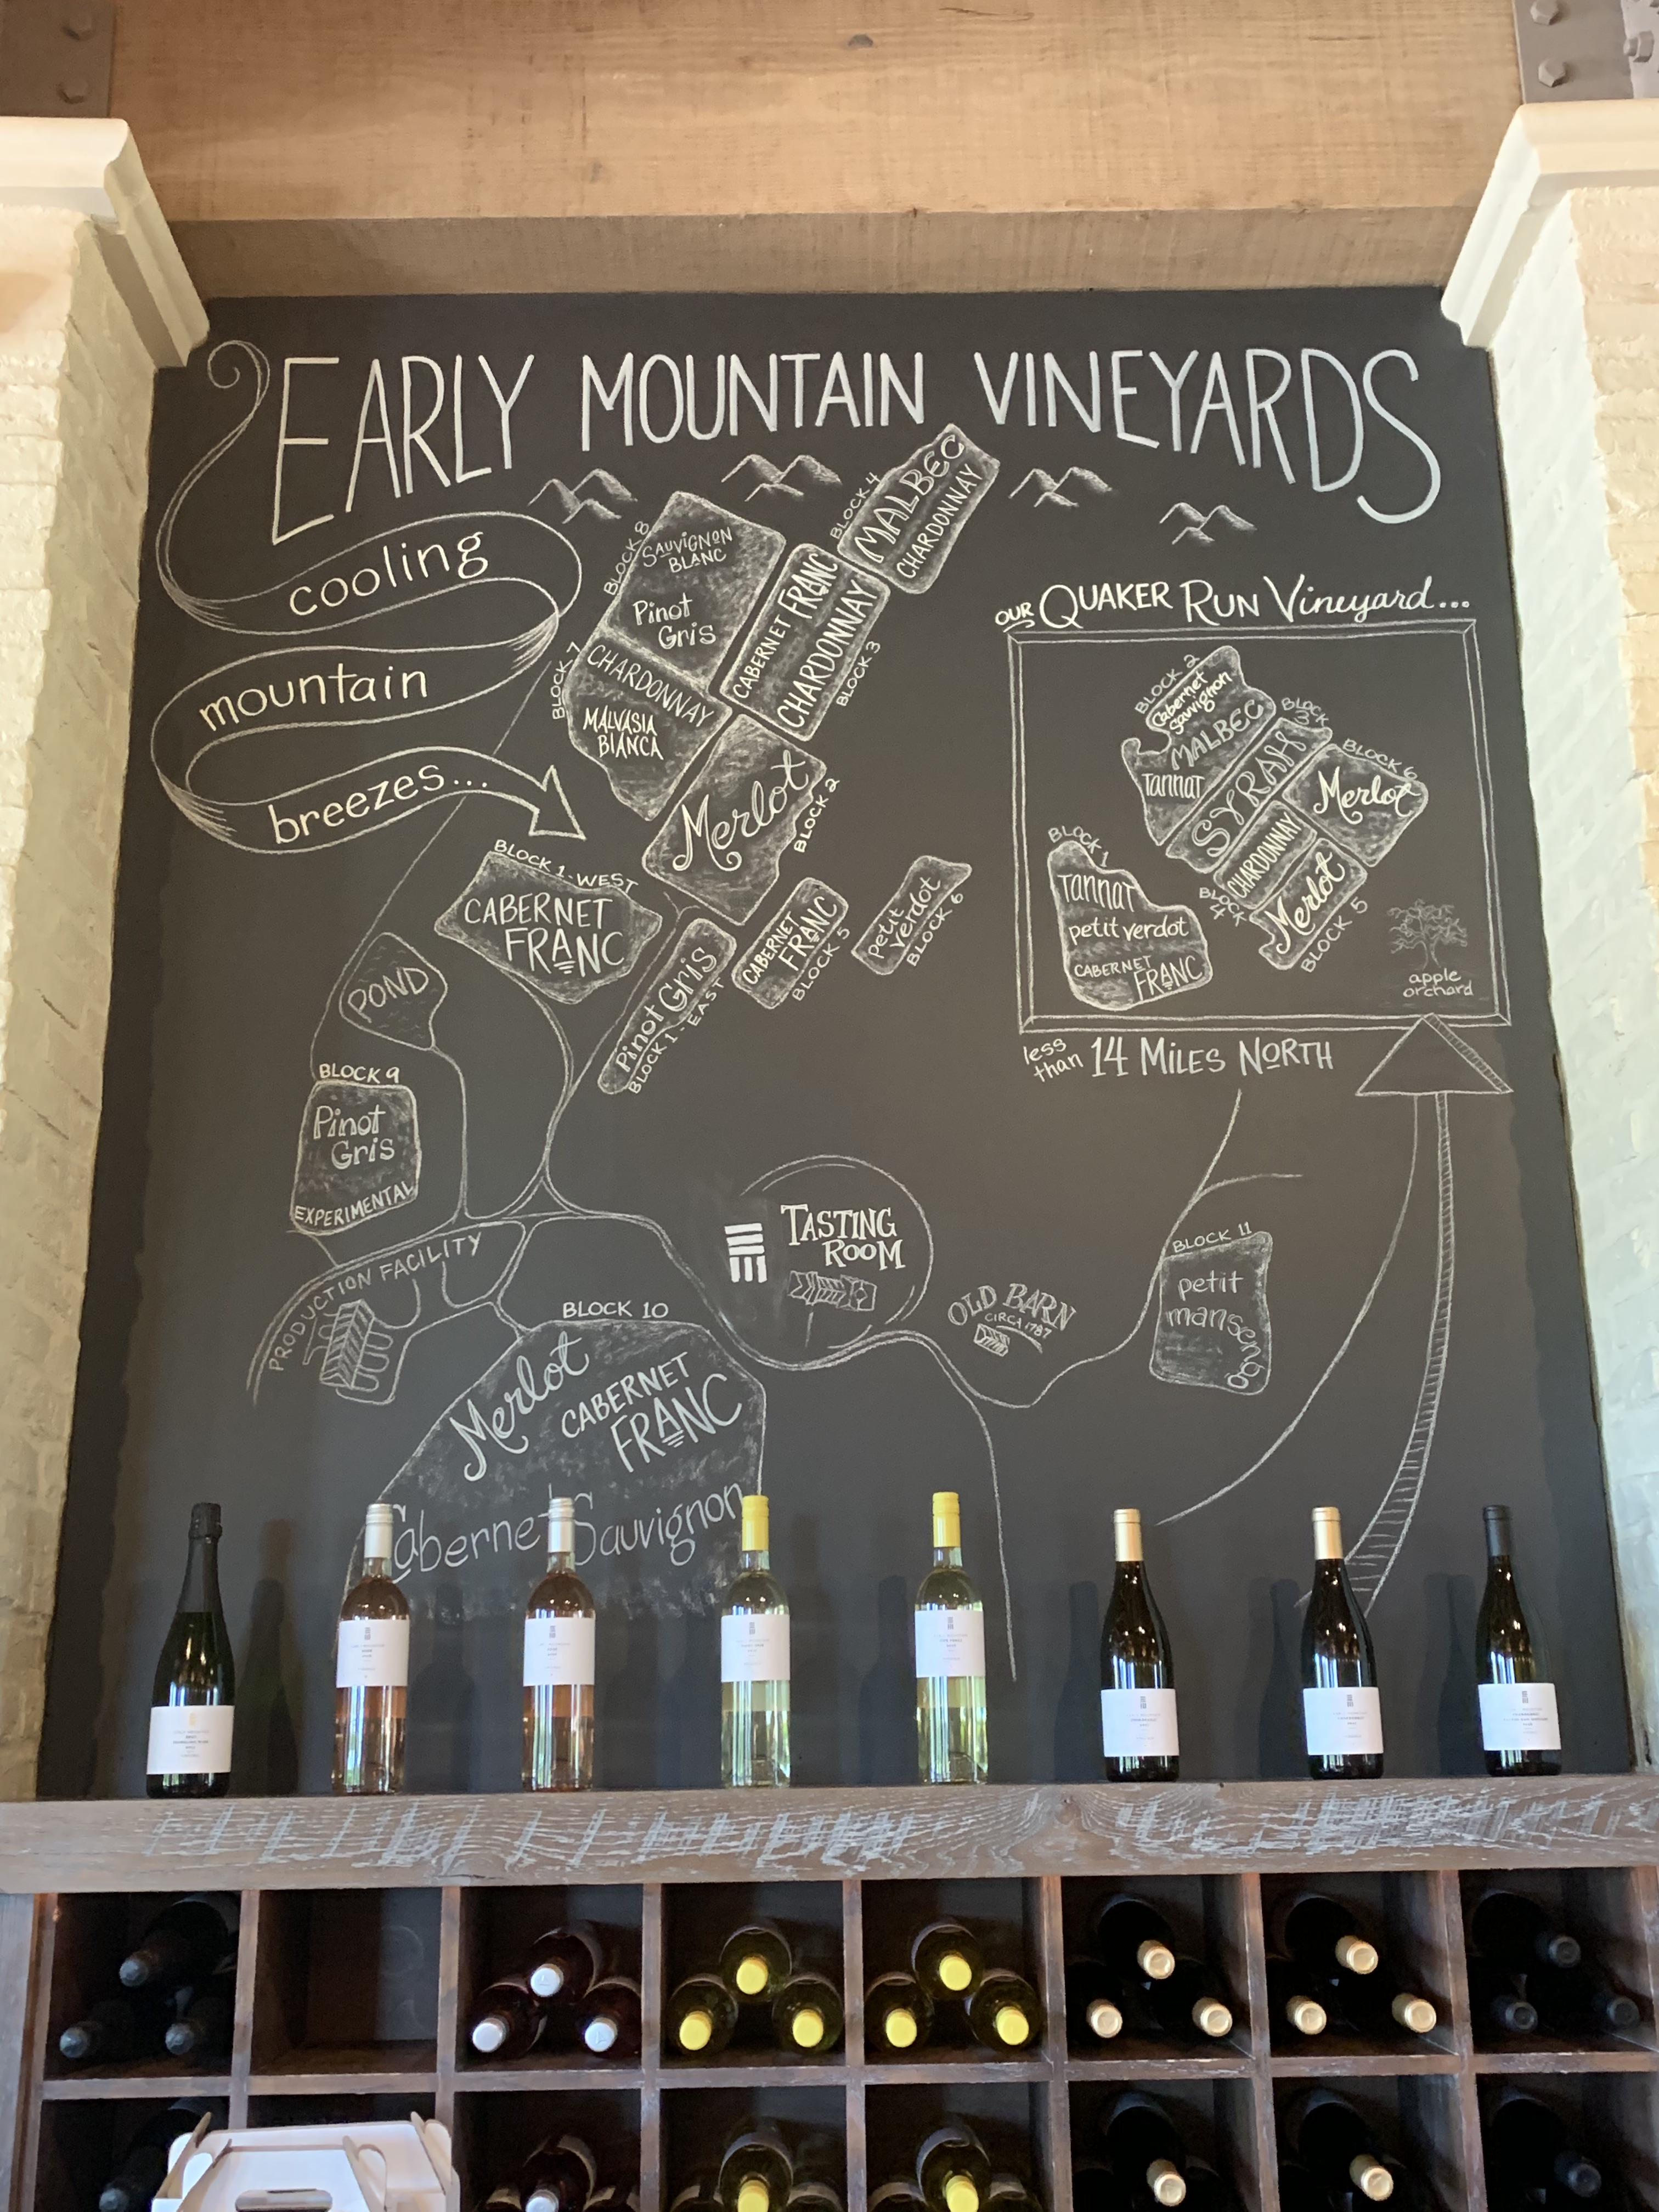 The Winegrowers of Horton and Early Mountain Vineyards